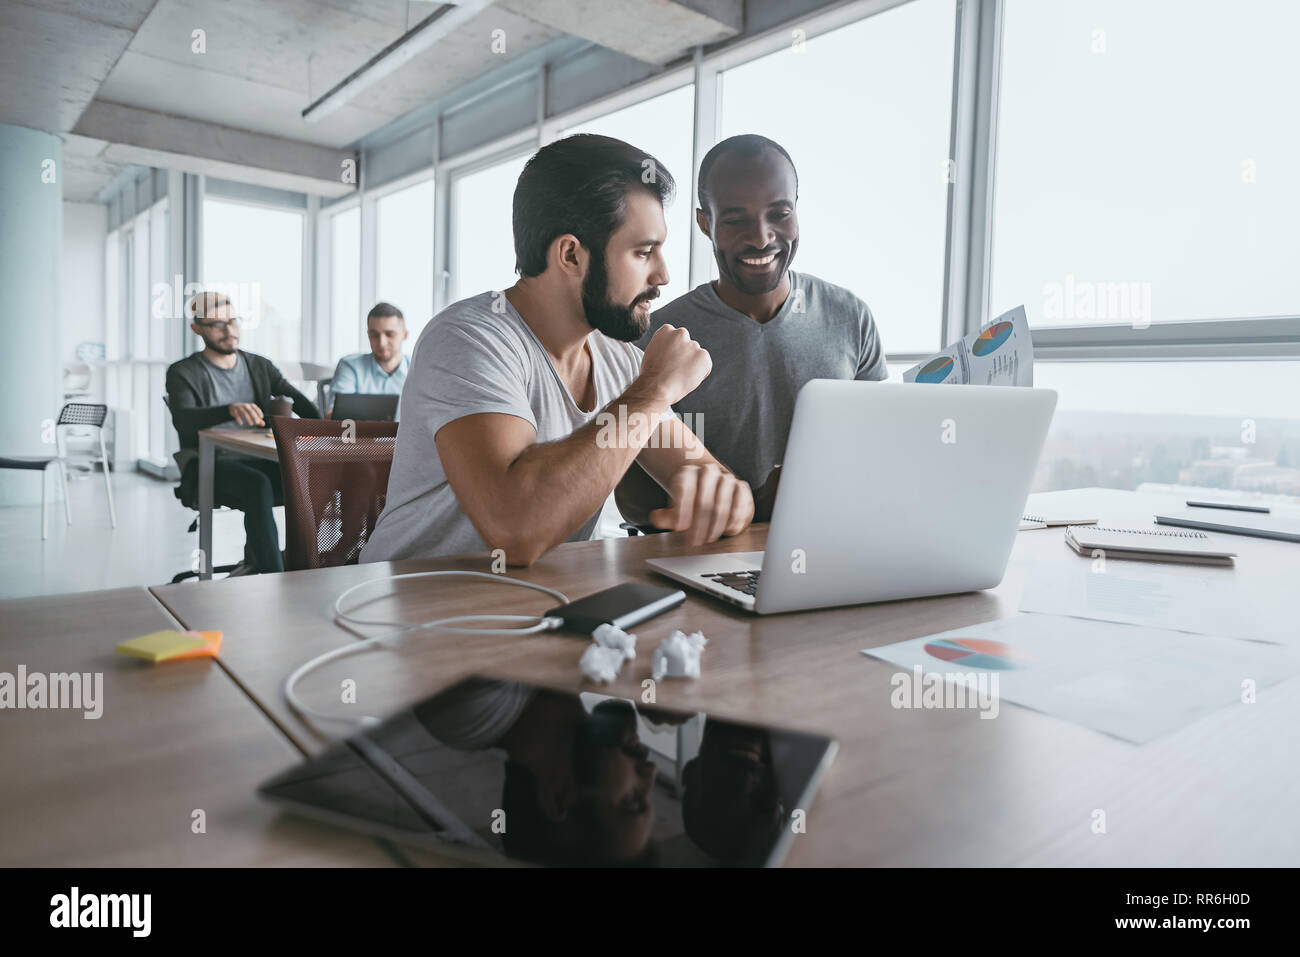 Two young businessmen using laptop and discussing new project at office, developing strategy for online business, explaining sharing ideas, preparing presentation, having brainstorming session - Stock Image